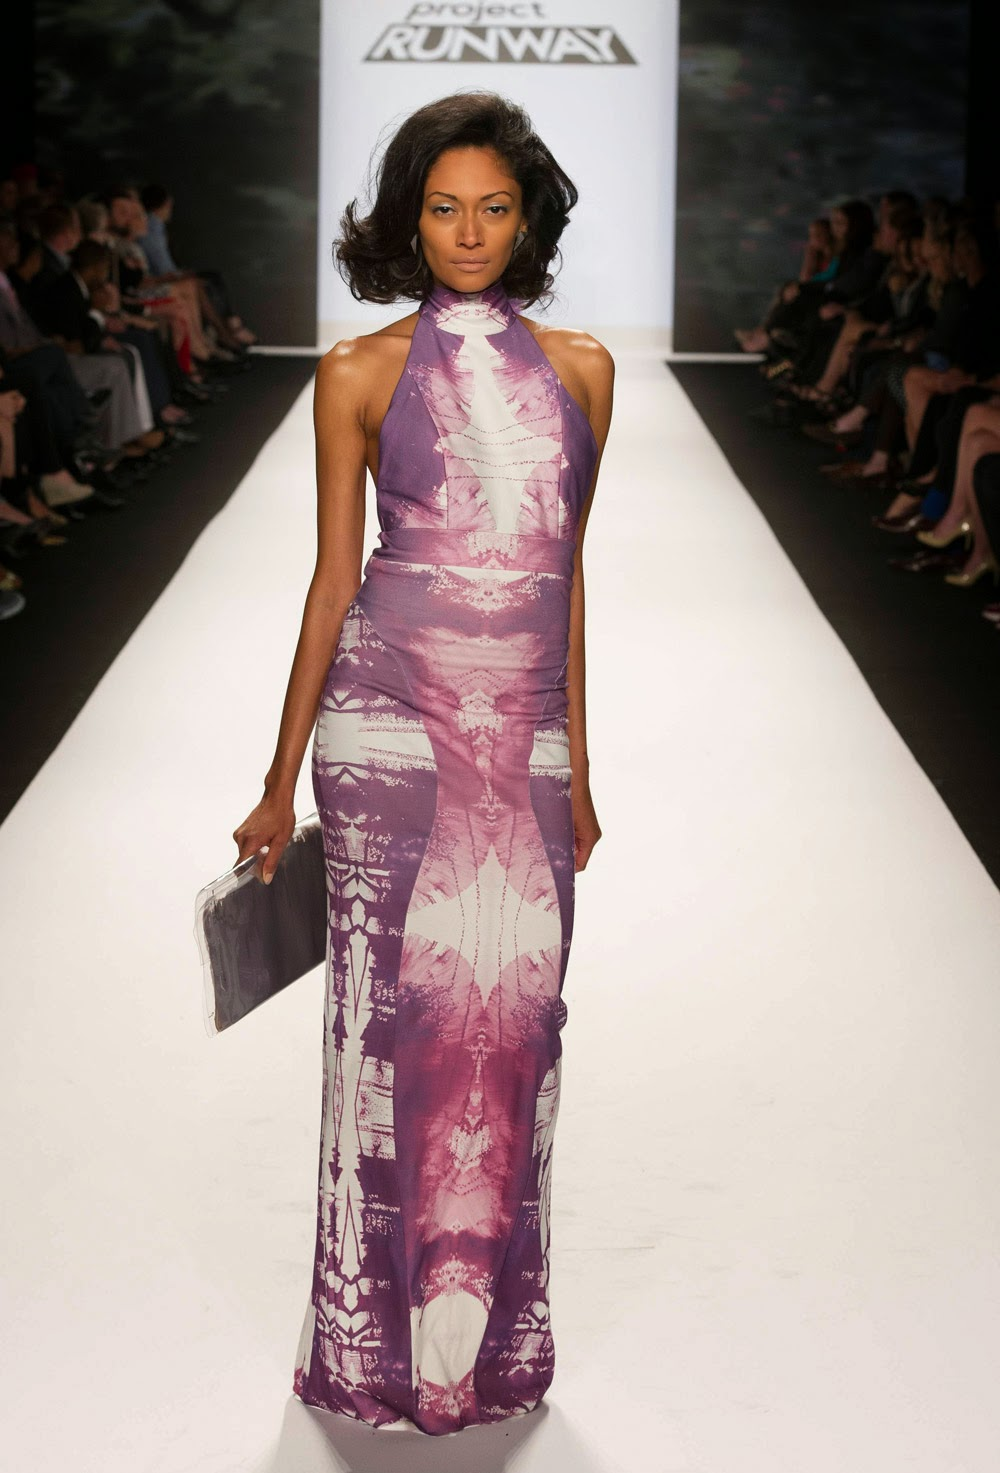 Fashion week Runway project winner shows at fashion week for girls